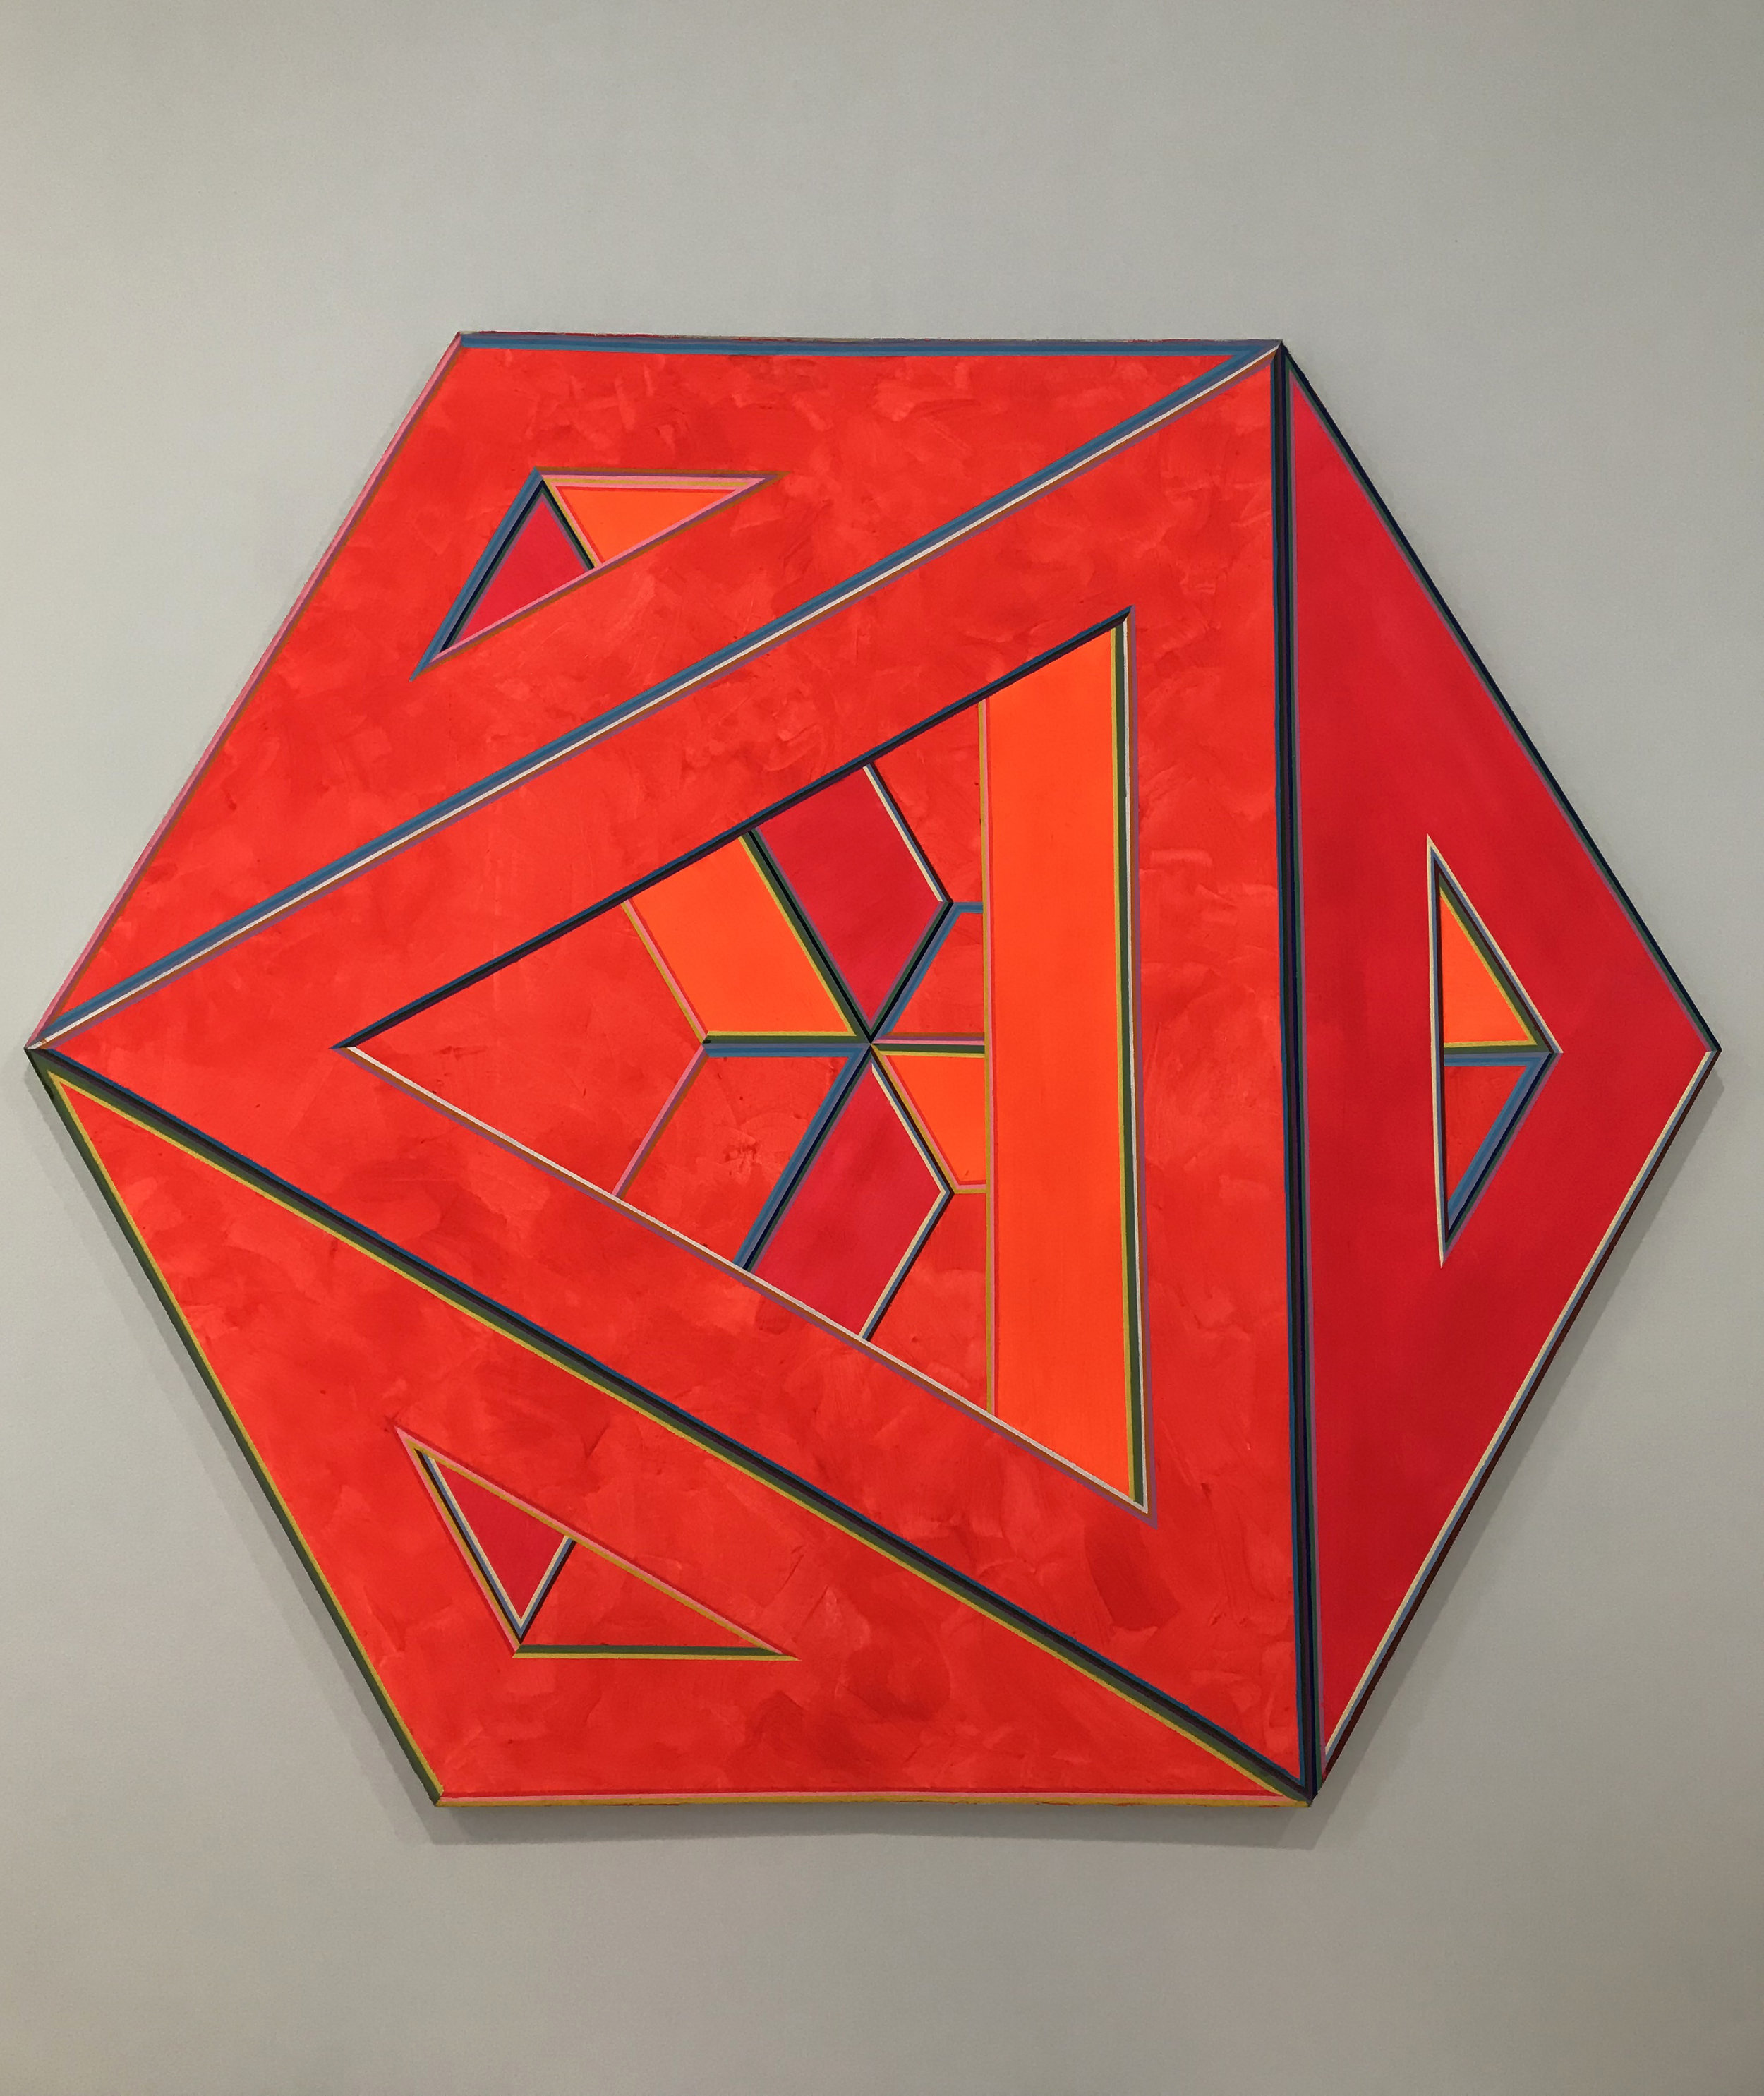 'Septehedron 34' by Alvin Loving, 1970. Acrylic on shaped canvas.